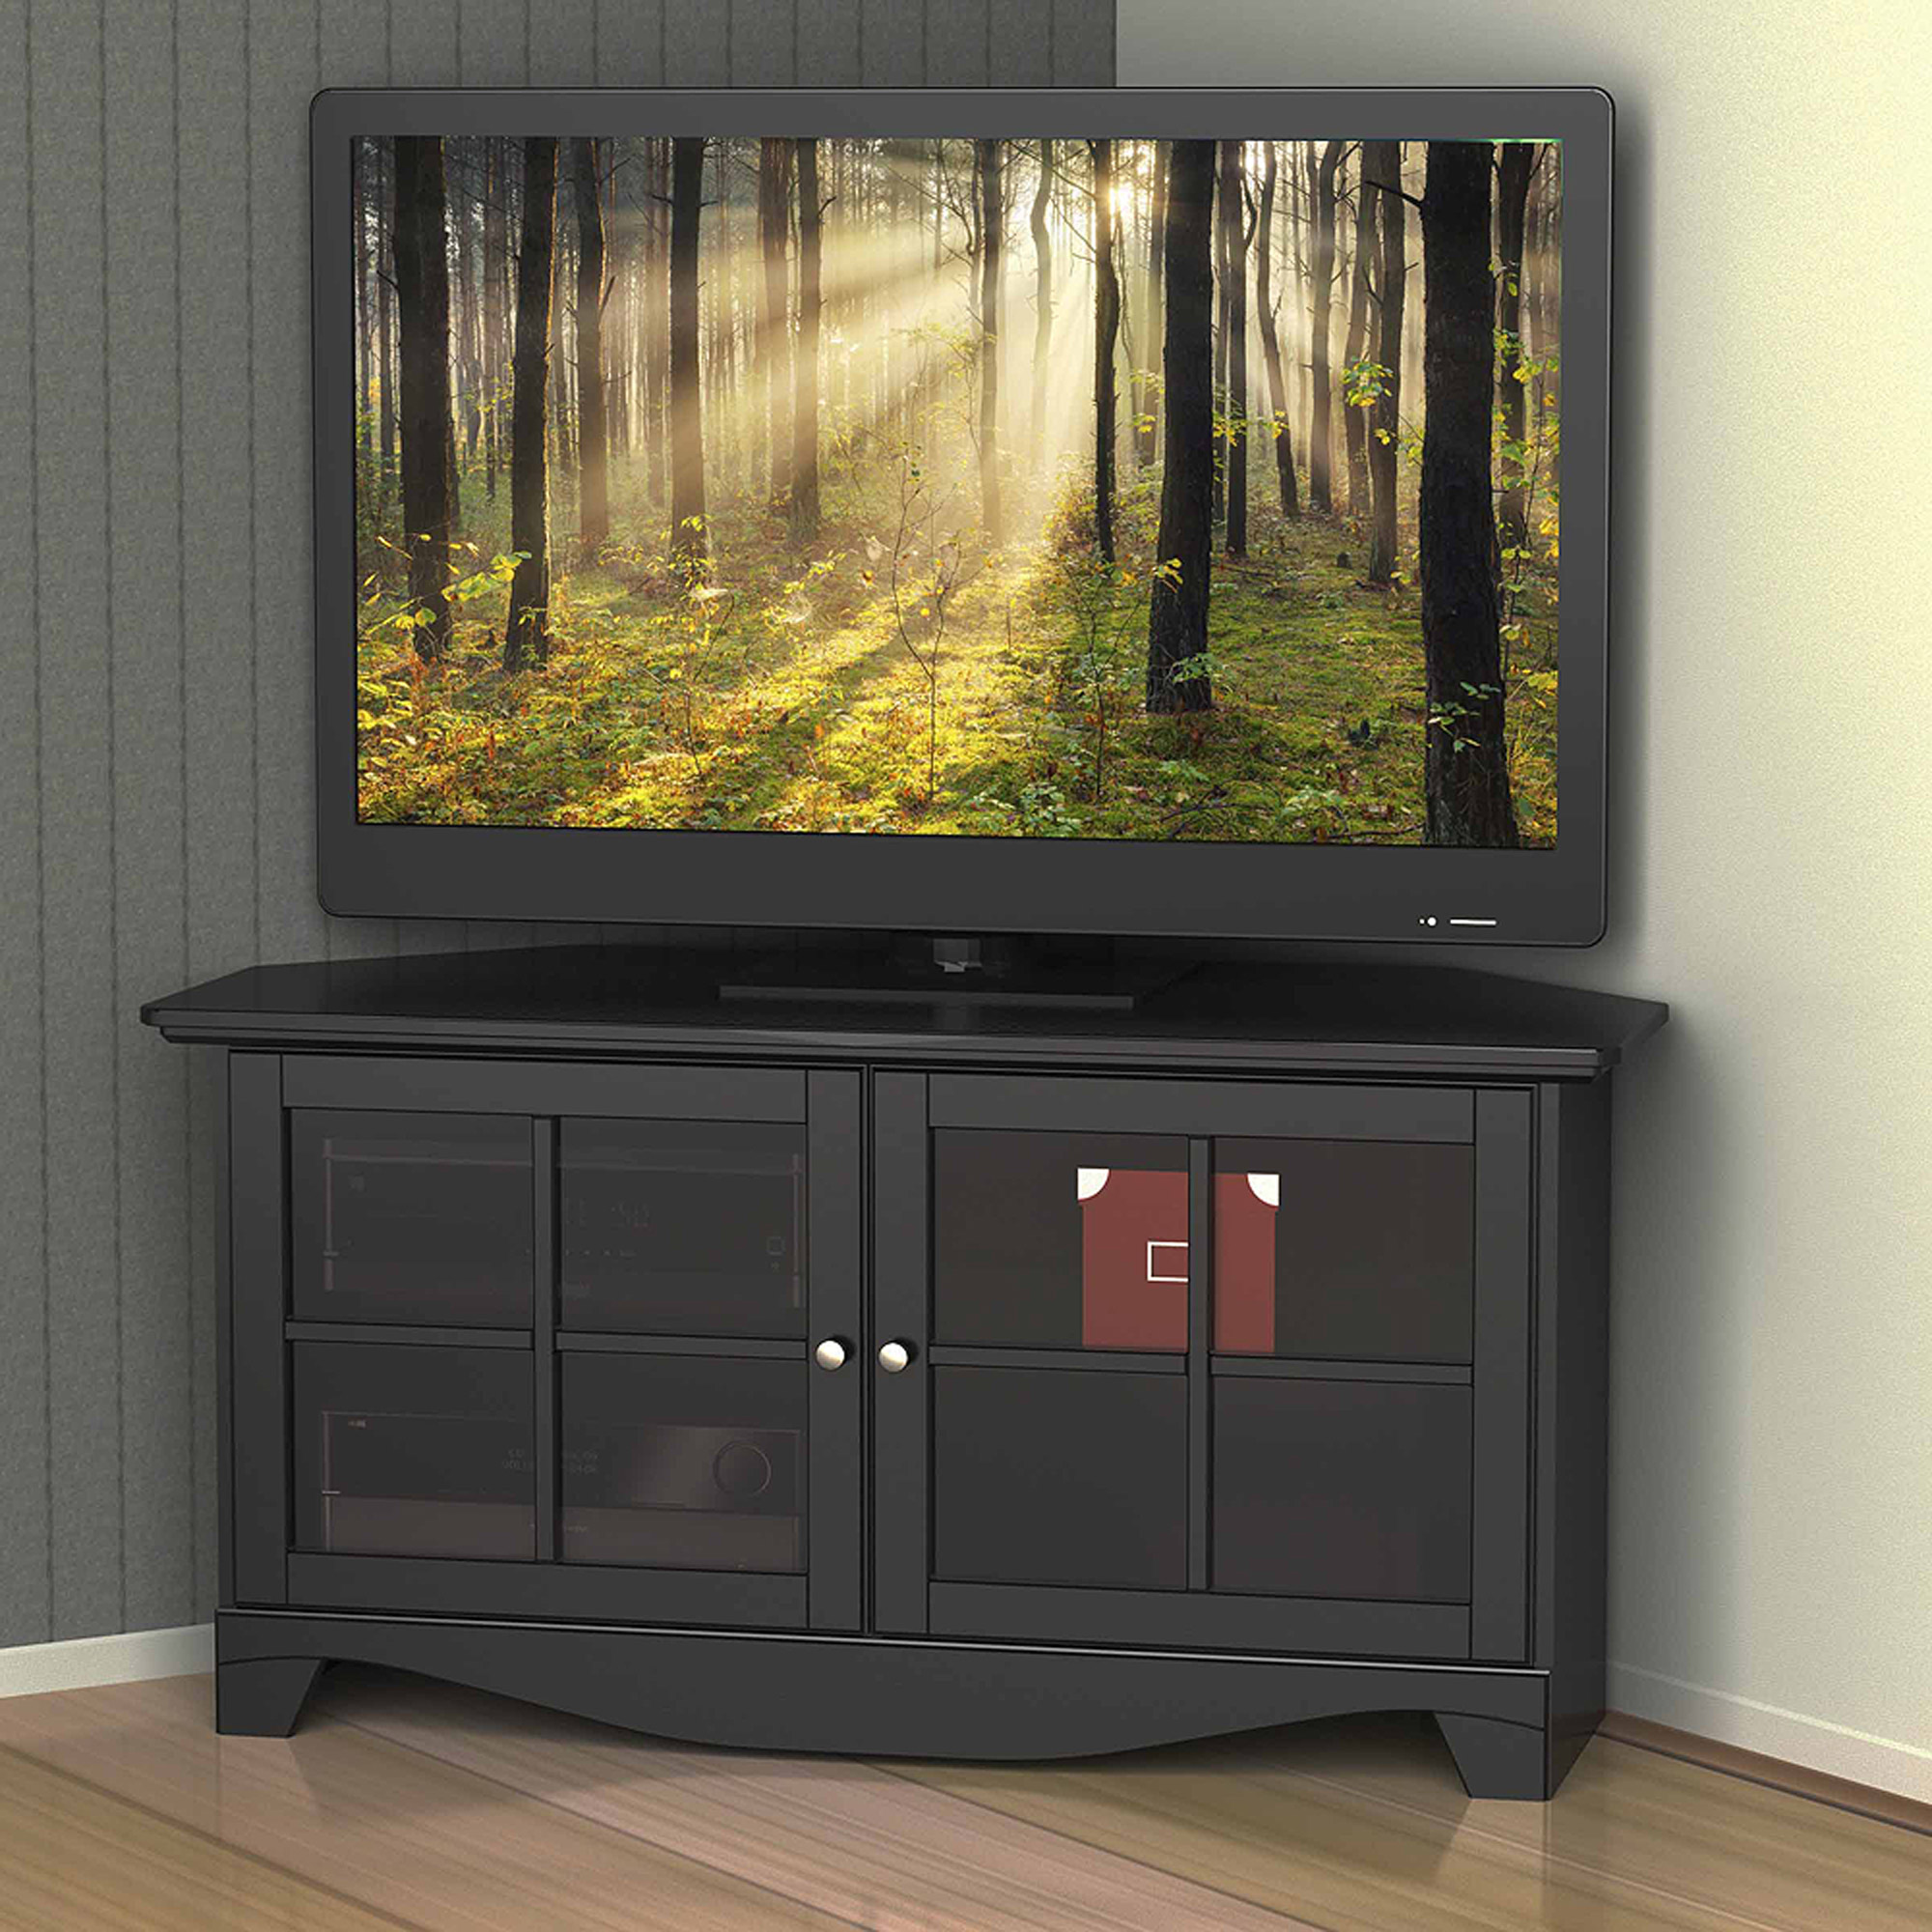 nexera pinnacle black 2 door corner tv stand for tvs up to 49 walmartcom - Walmart Small Tv Stands